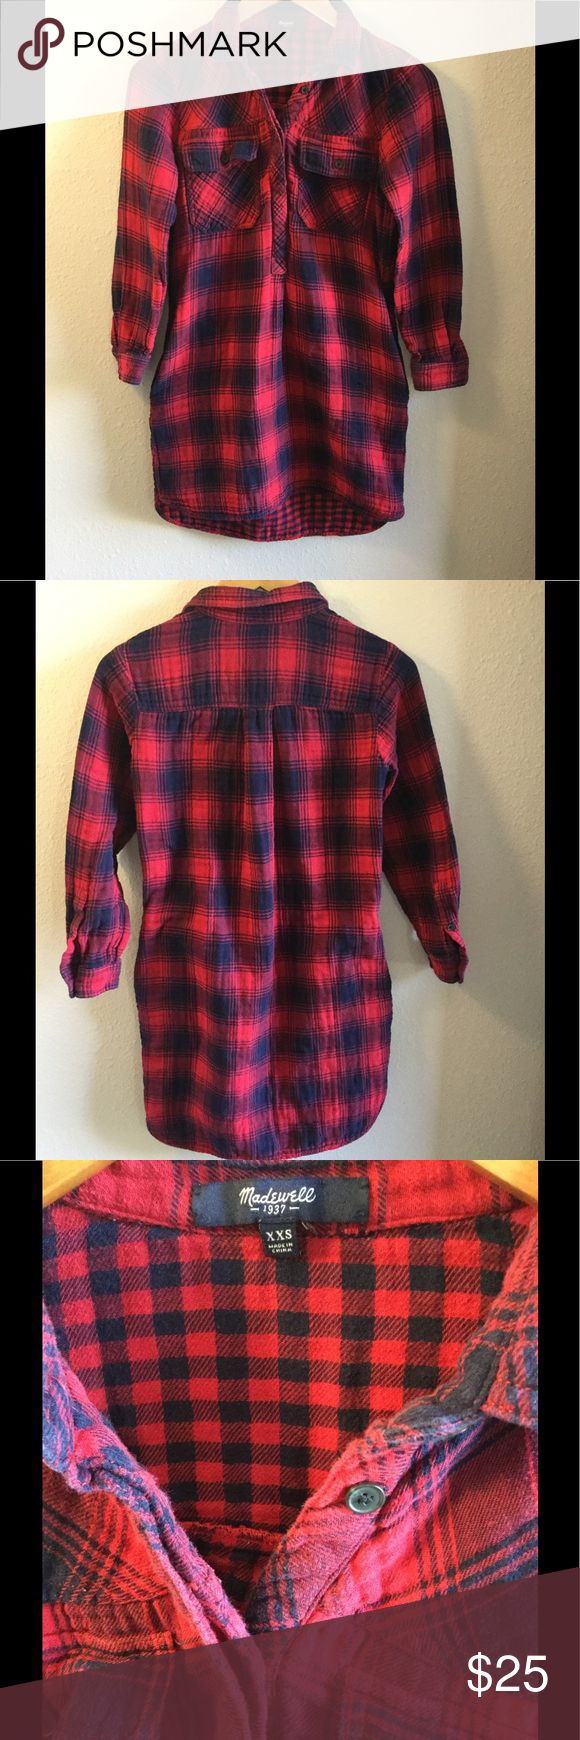 Madewell flannel shirt dress 100% cotton. Minor pilling on the sleeves. Thanks for looking! Madewell Dresses